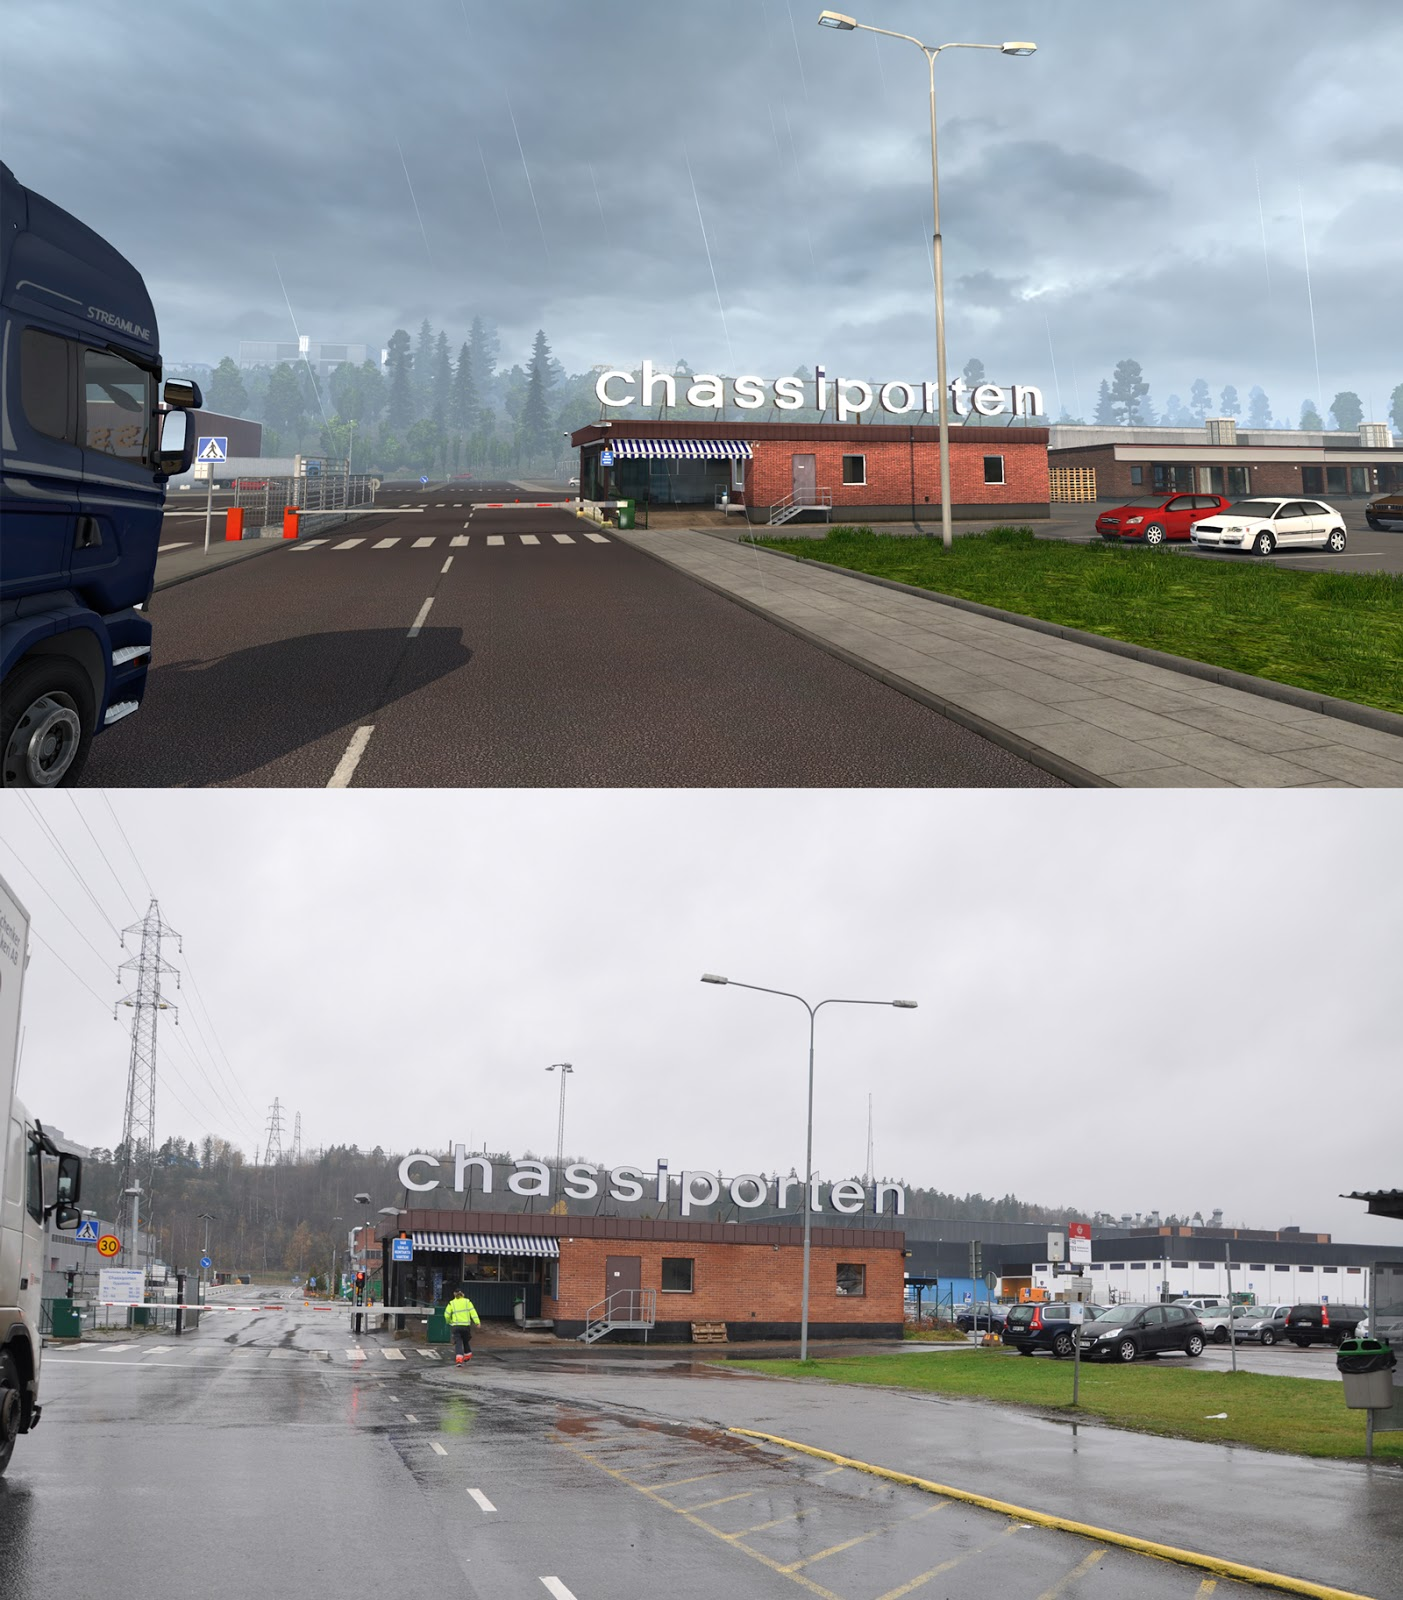 ets2_scania_factory_chassiporten_real_comparison_02